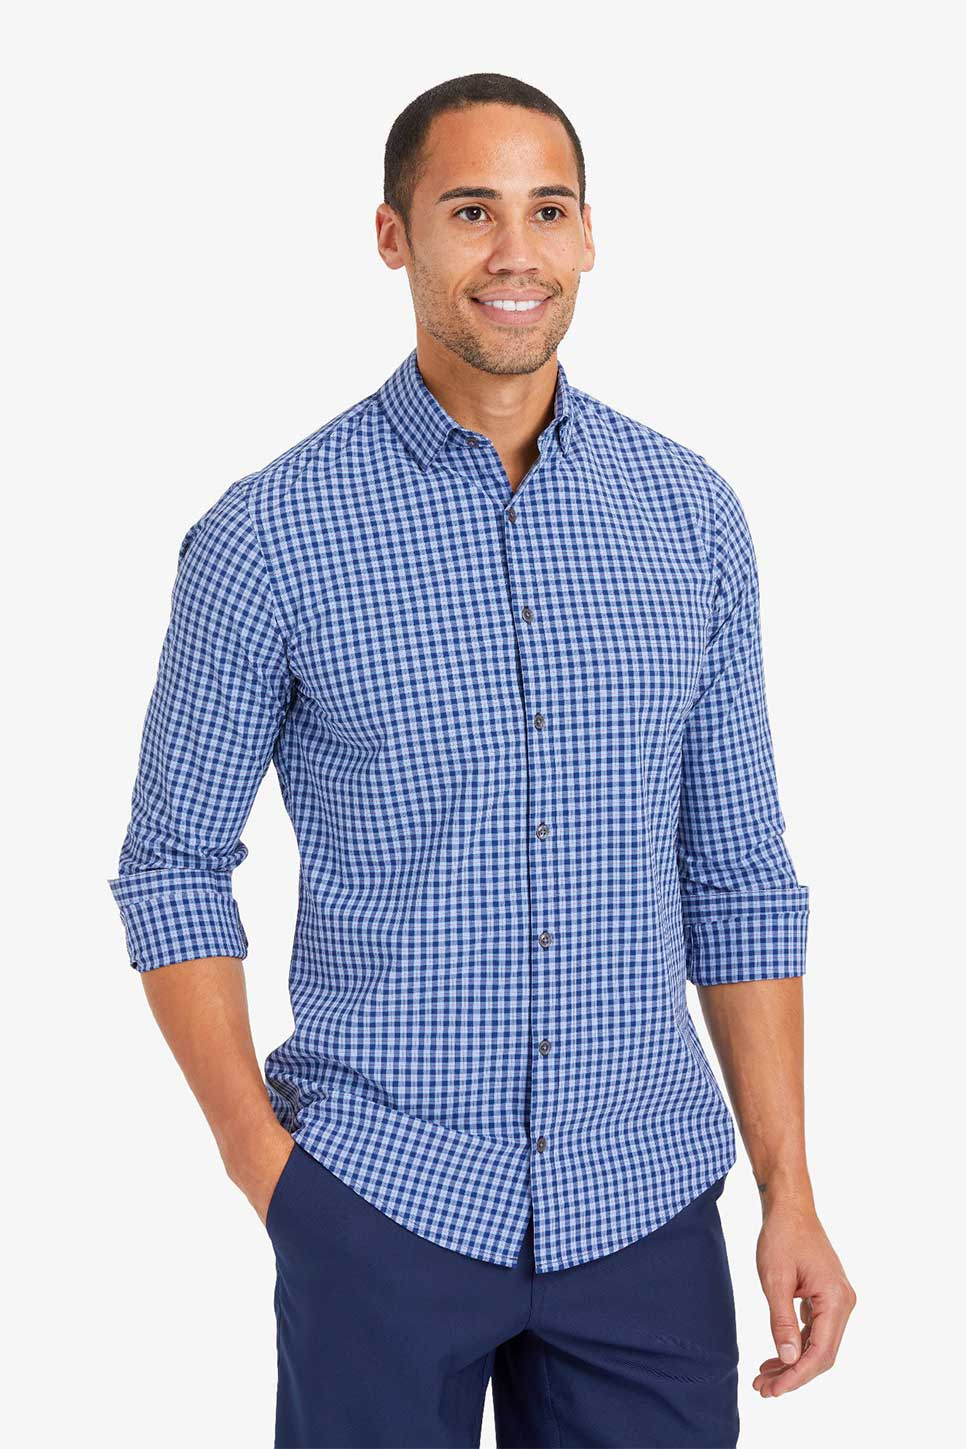 Mizzen + Main - LW Leeward LS - Blue Red Multi Plaid - Front